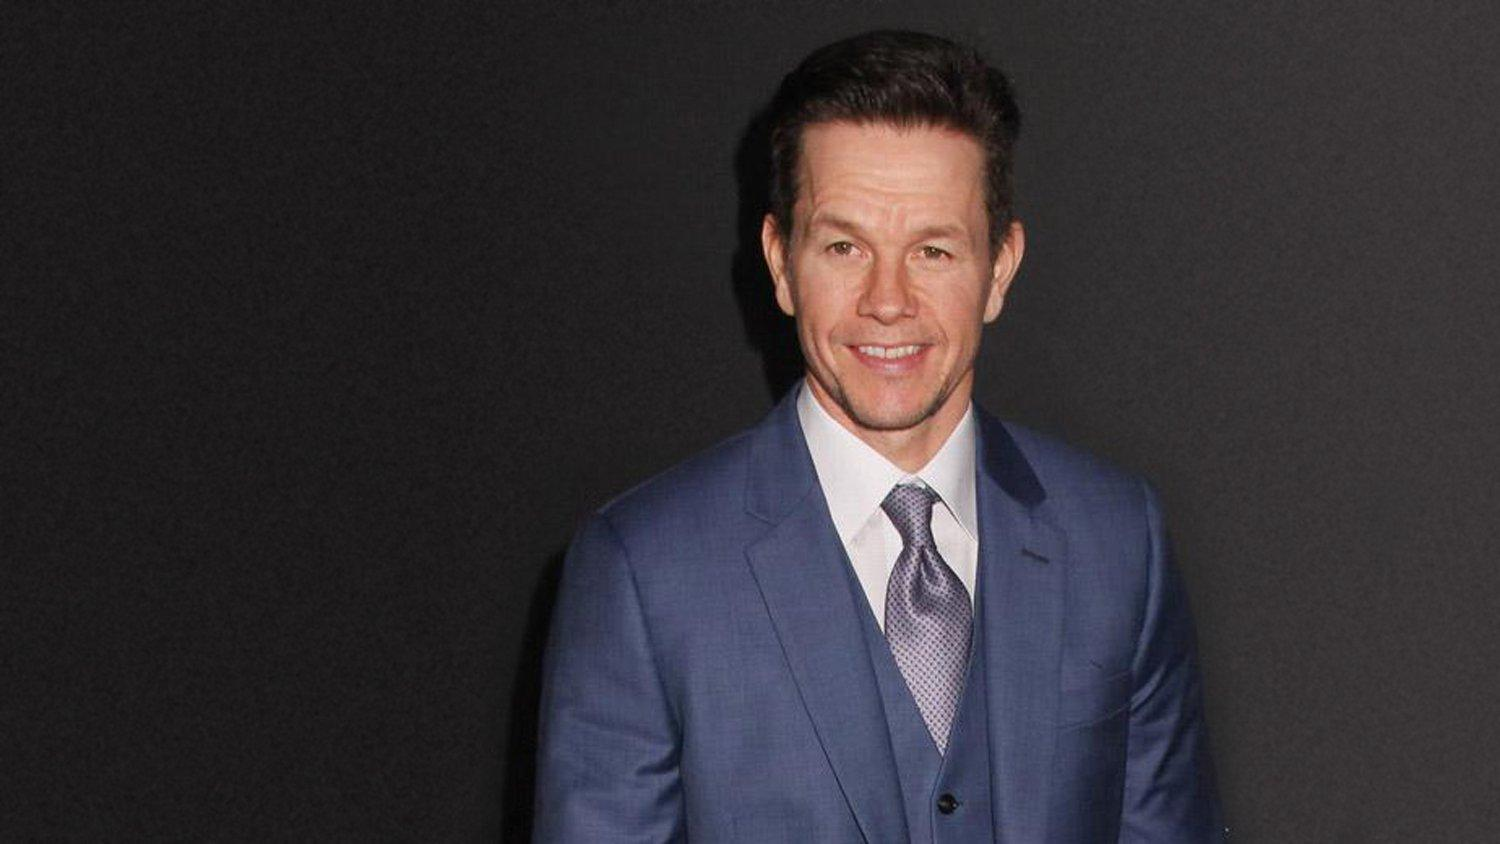 Mark Wahlberg donates 1.3 million face masks to schools - GLOBAL HEROES MAGAZINE